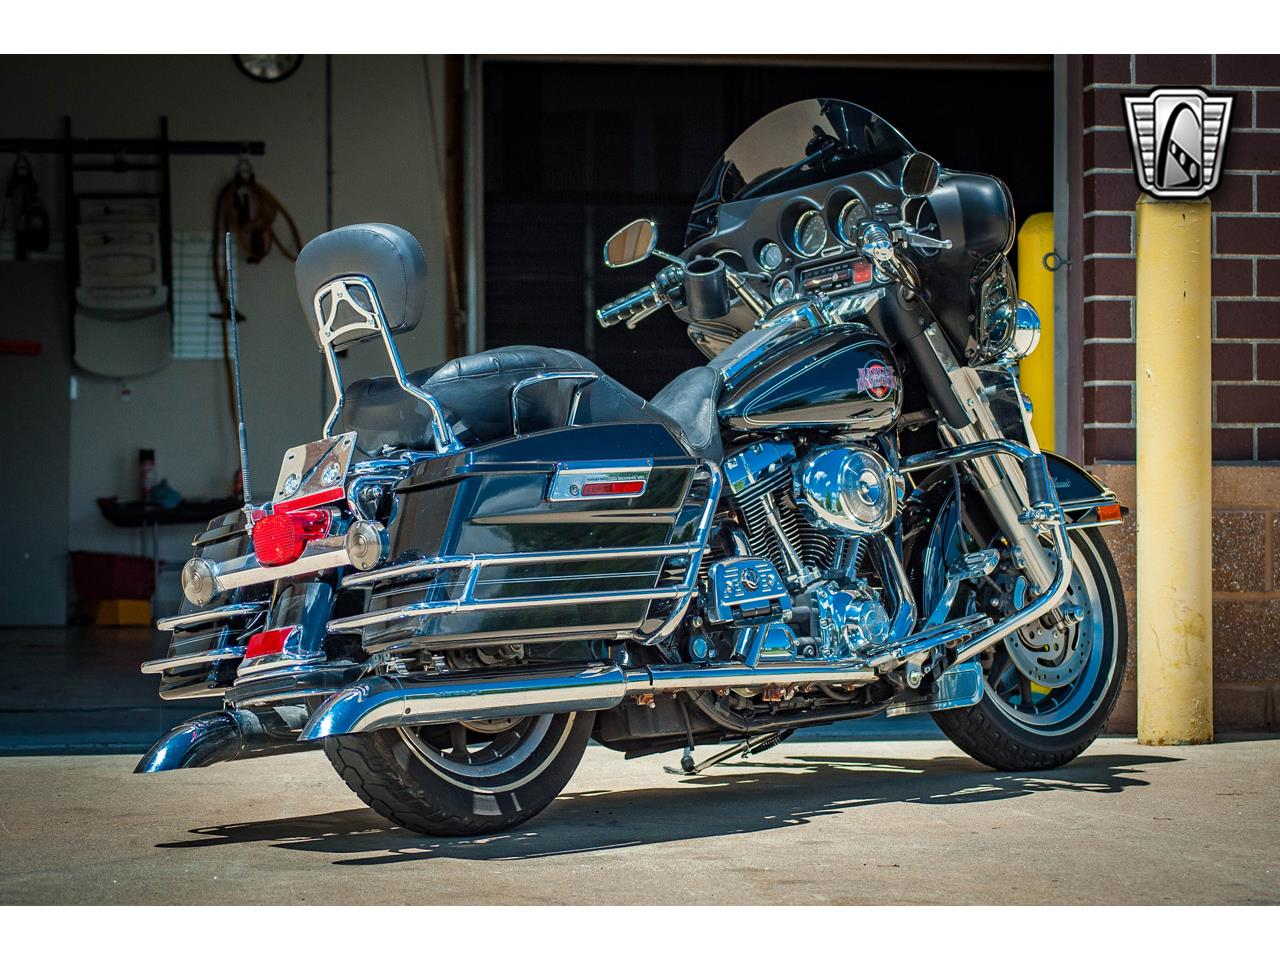 Large Picture of 2004 Harley-Davidson Motorcycle - $12,000.00 - QD6F